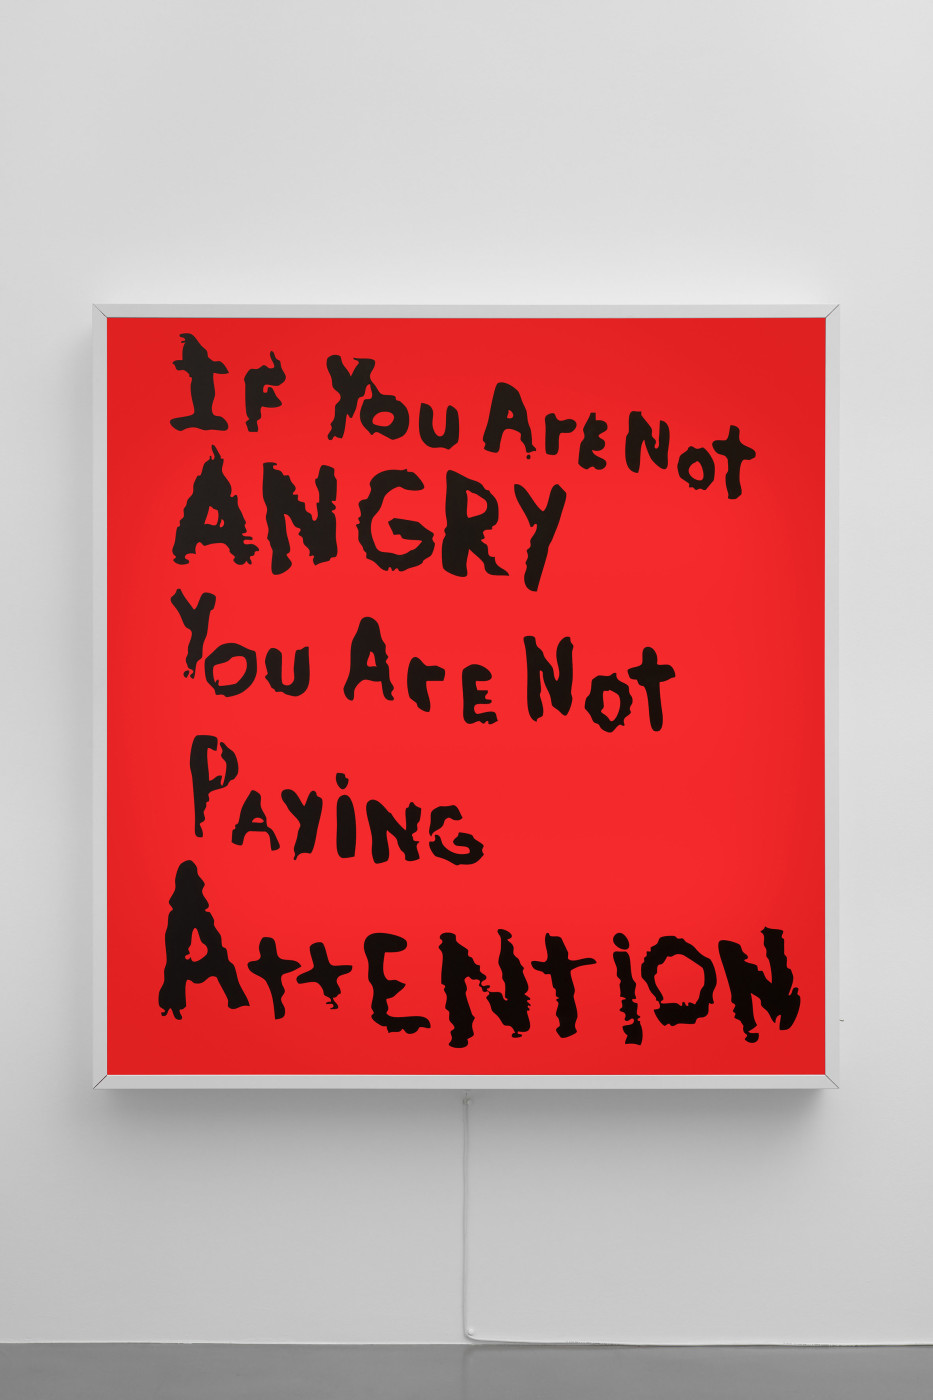 "<div class=""title""><em>If You Are Not Angry You Are Not Paying Attention</em>, 2017</div><div class=""medium"">light box</div><div class=""dimensions"">176.0 x 166.0 x 15.0 cm<br />69 1/4 x 65 1/4 x 5 7/8 in.</div>"